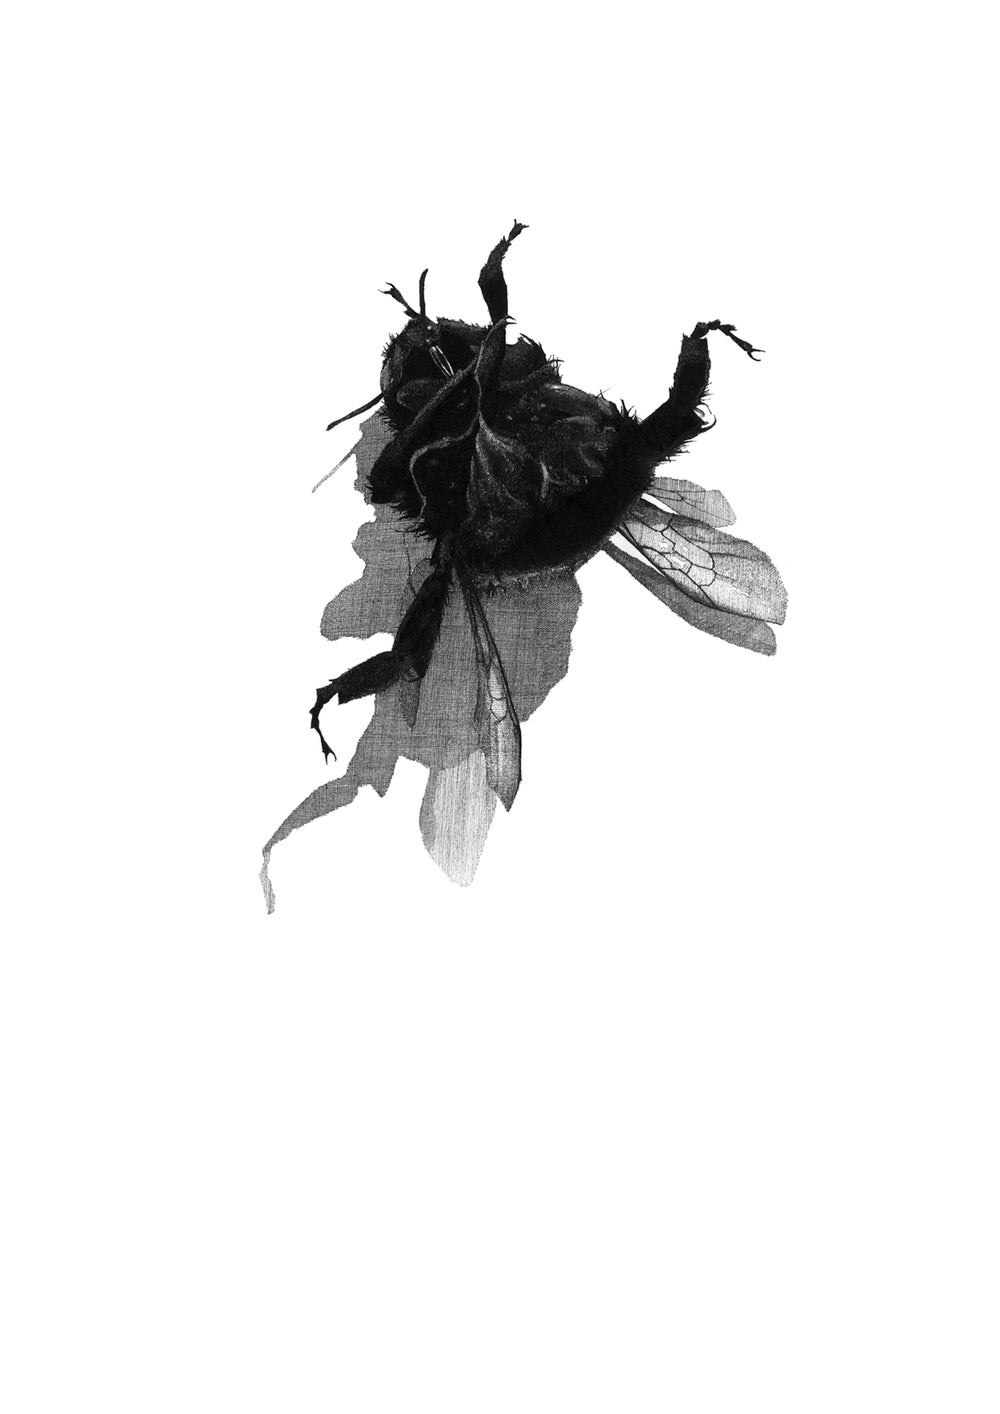 Image of Small Dead Things 1 (Bee)